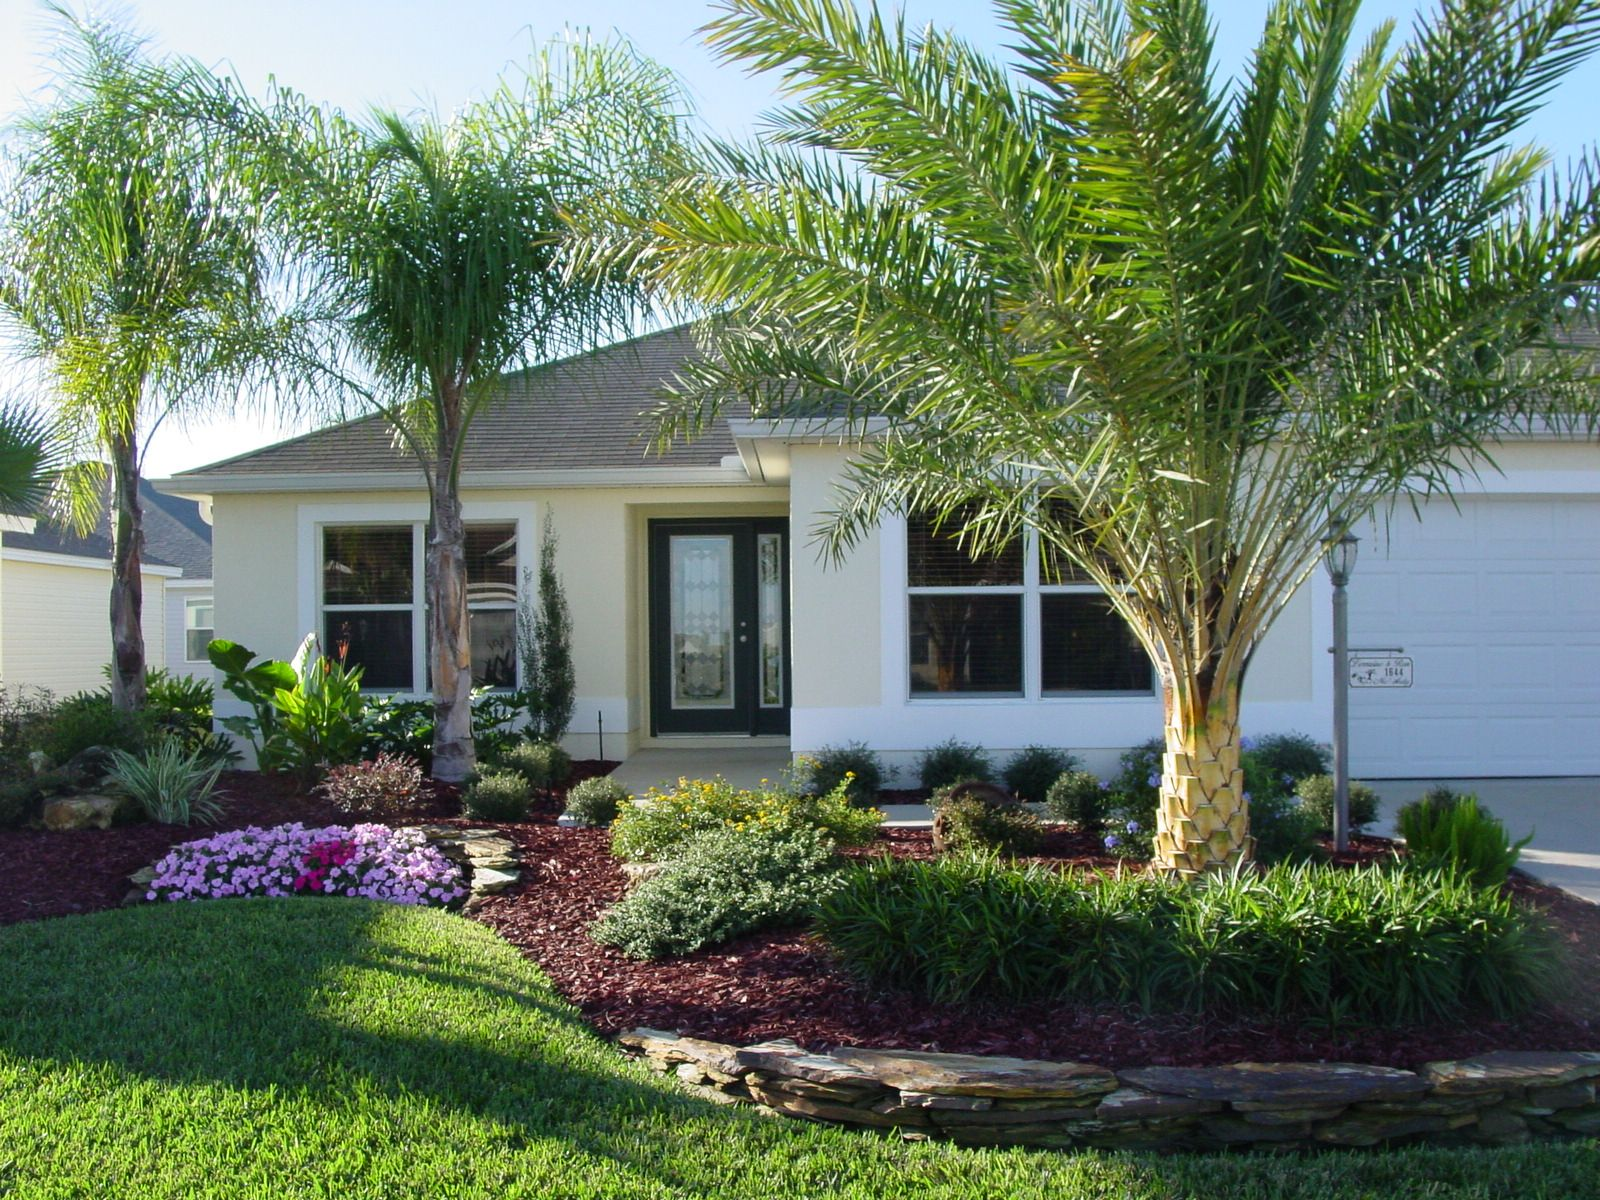 florida landscaping ideas for front of house - Google Search ...